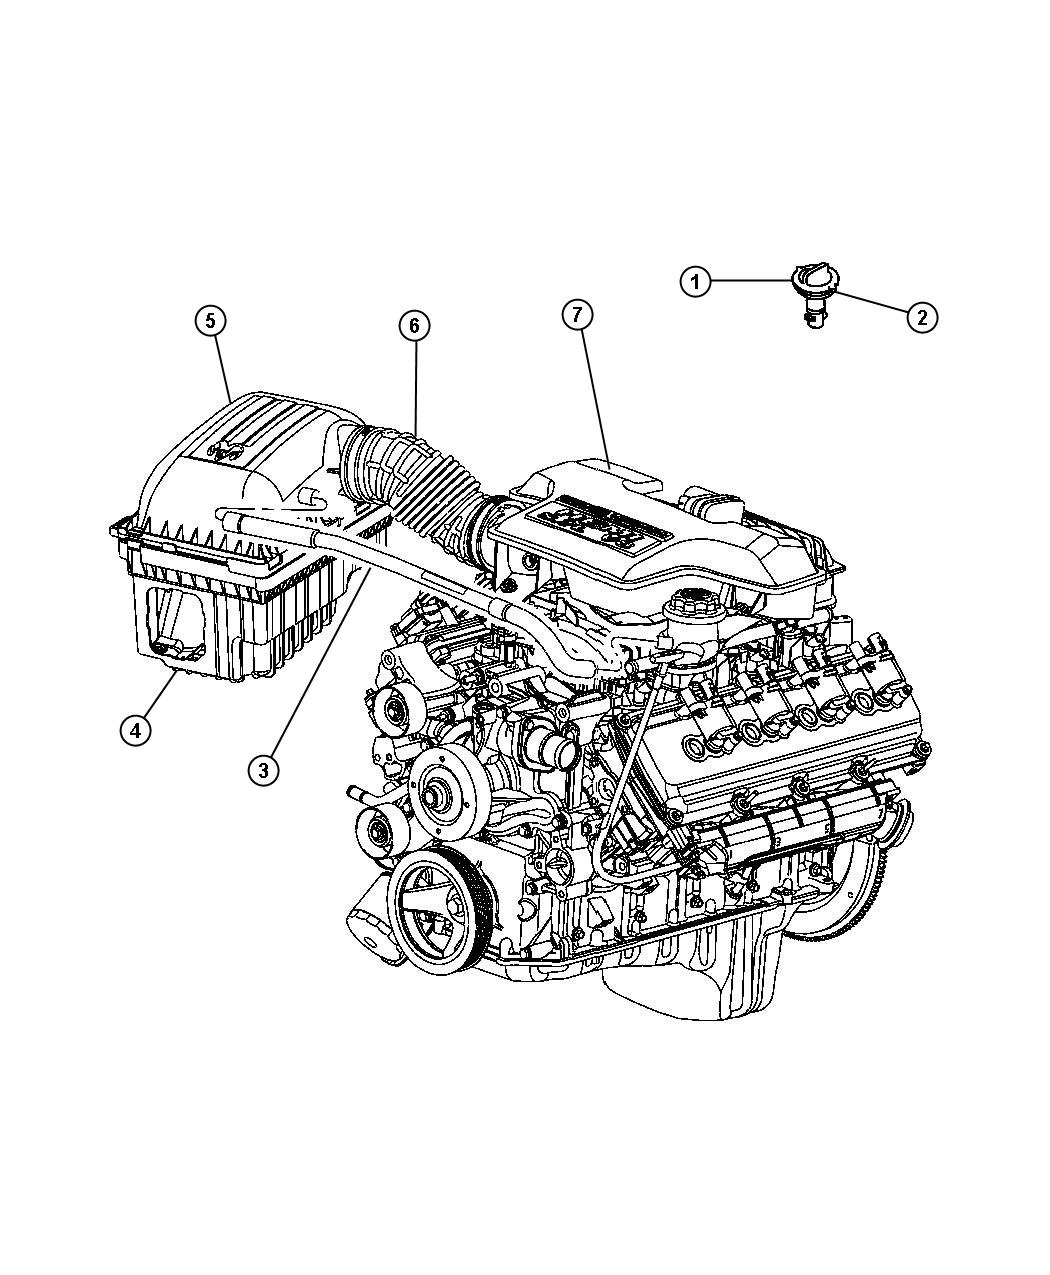 ram 1500 gas vent schematic  ram  free engine image for